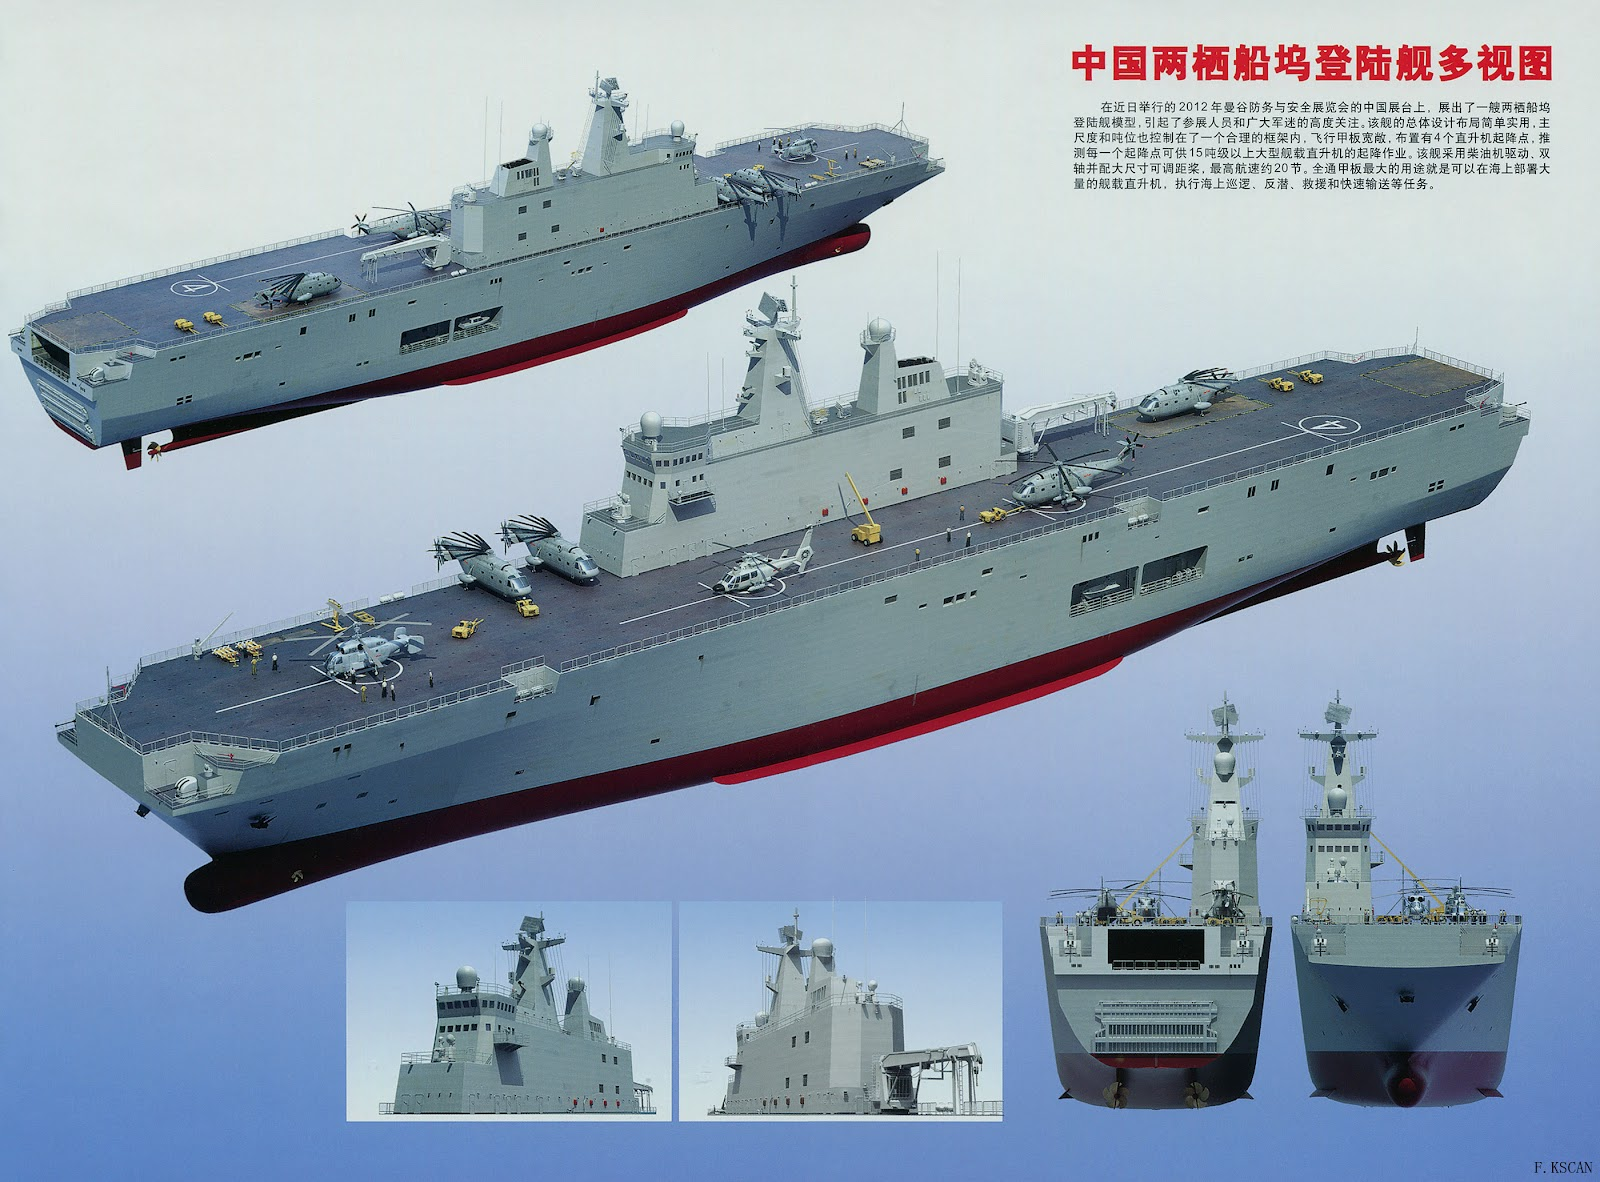 z 20 helicopter with Type 081landing Helicopter Dock Lhd on Chinese Type 054a Jiangkai Ii Class together with Chinese Sharp Claw 1 Ugv Unmanned moreover China Has High Hopes Z 20 Helicopter 0 additionally Showthread as well Page 41.